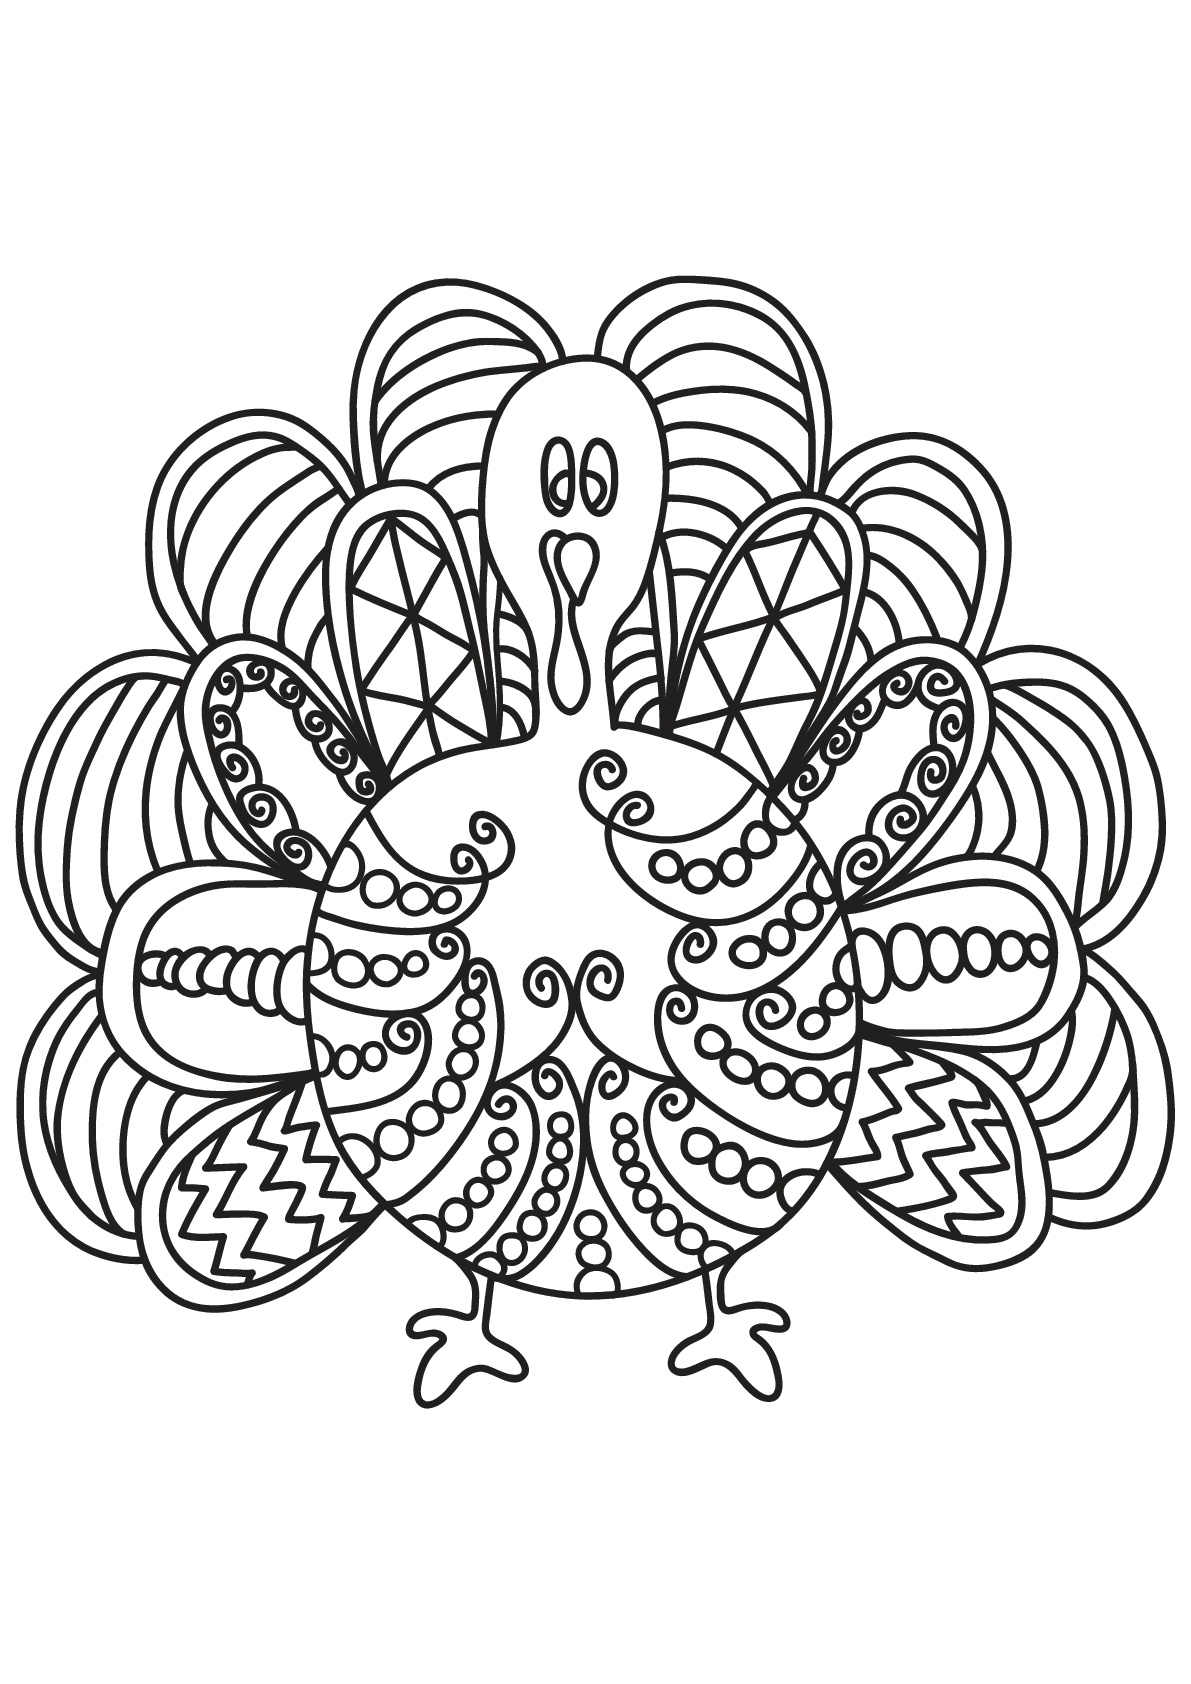 Birds To Color For Kids Birds Kids Coloring Pages